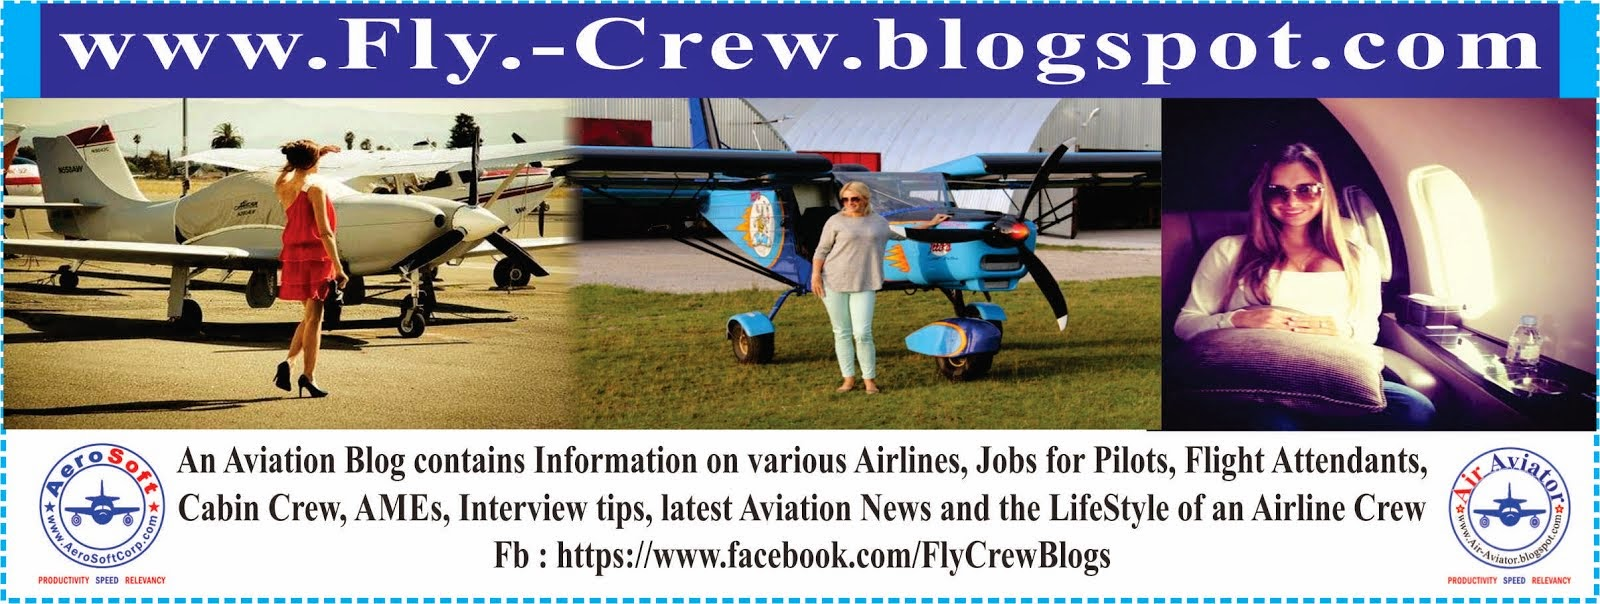 fly crew air hostes jobs as cabin crew vietnam airlines fly crew pot com this aviation blog contains information on various airlines jobs for pilots and flight attendants cabin crew interview tips